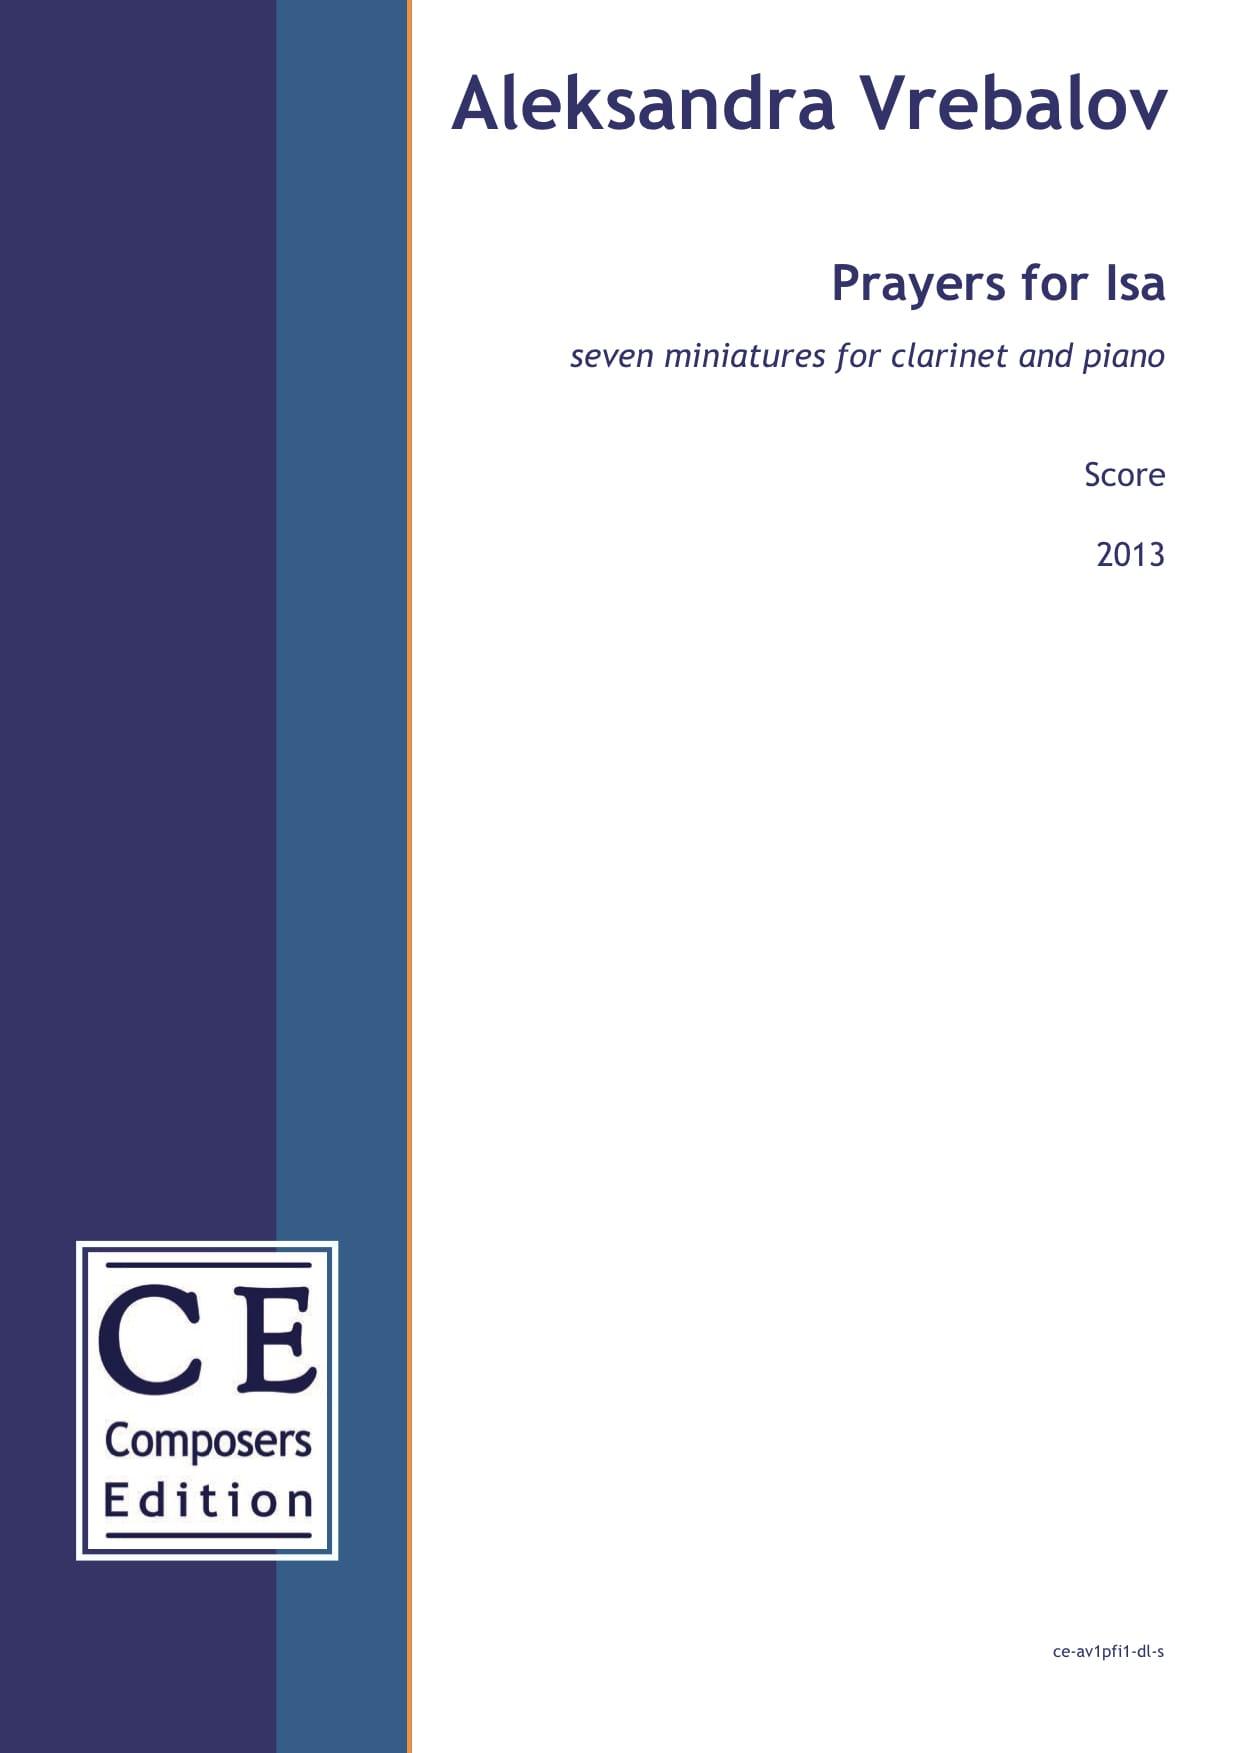 Aleksandra Vrebalov: Prayers for Isa seven miniatures for clarinet and piano